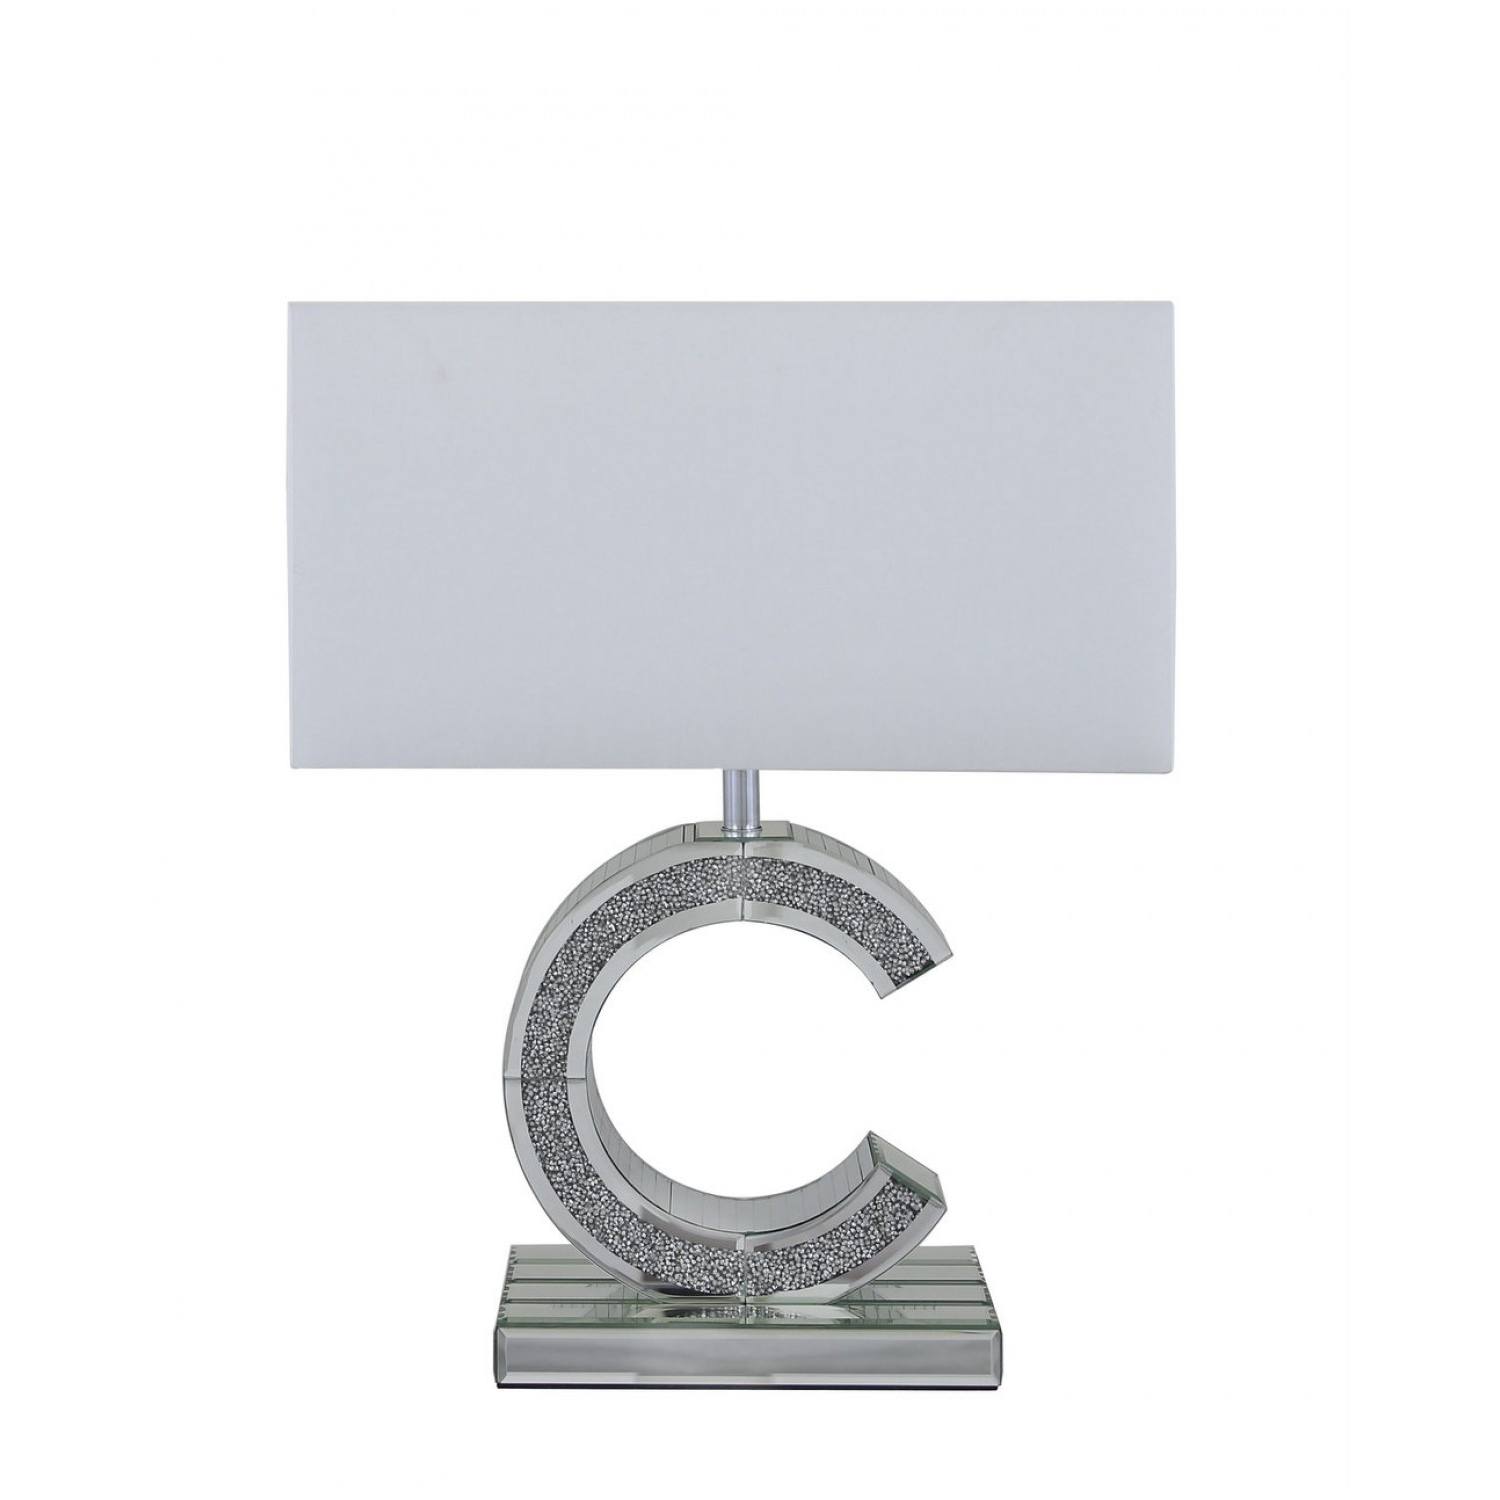 C shaped mirror table lamp milano mirror c shape table lamp mirror small milano mirror c table lamp with white shade aloadofball